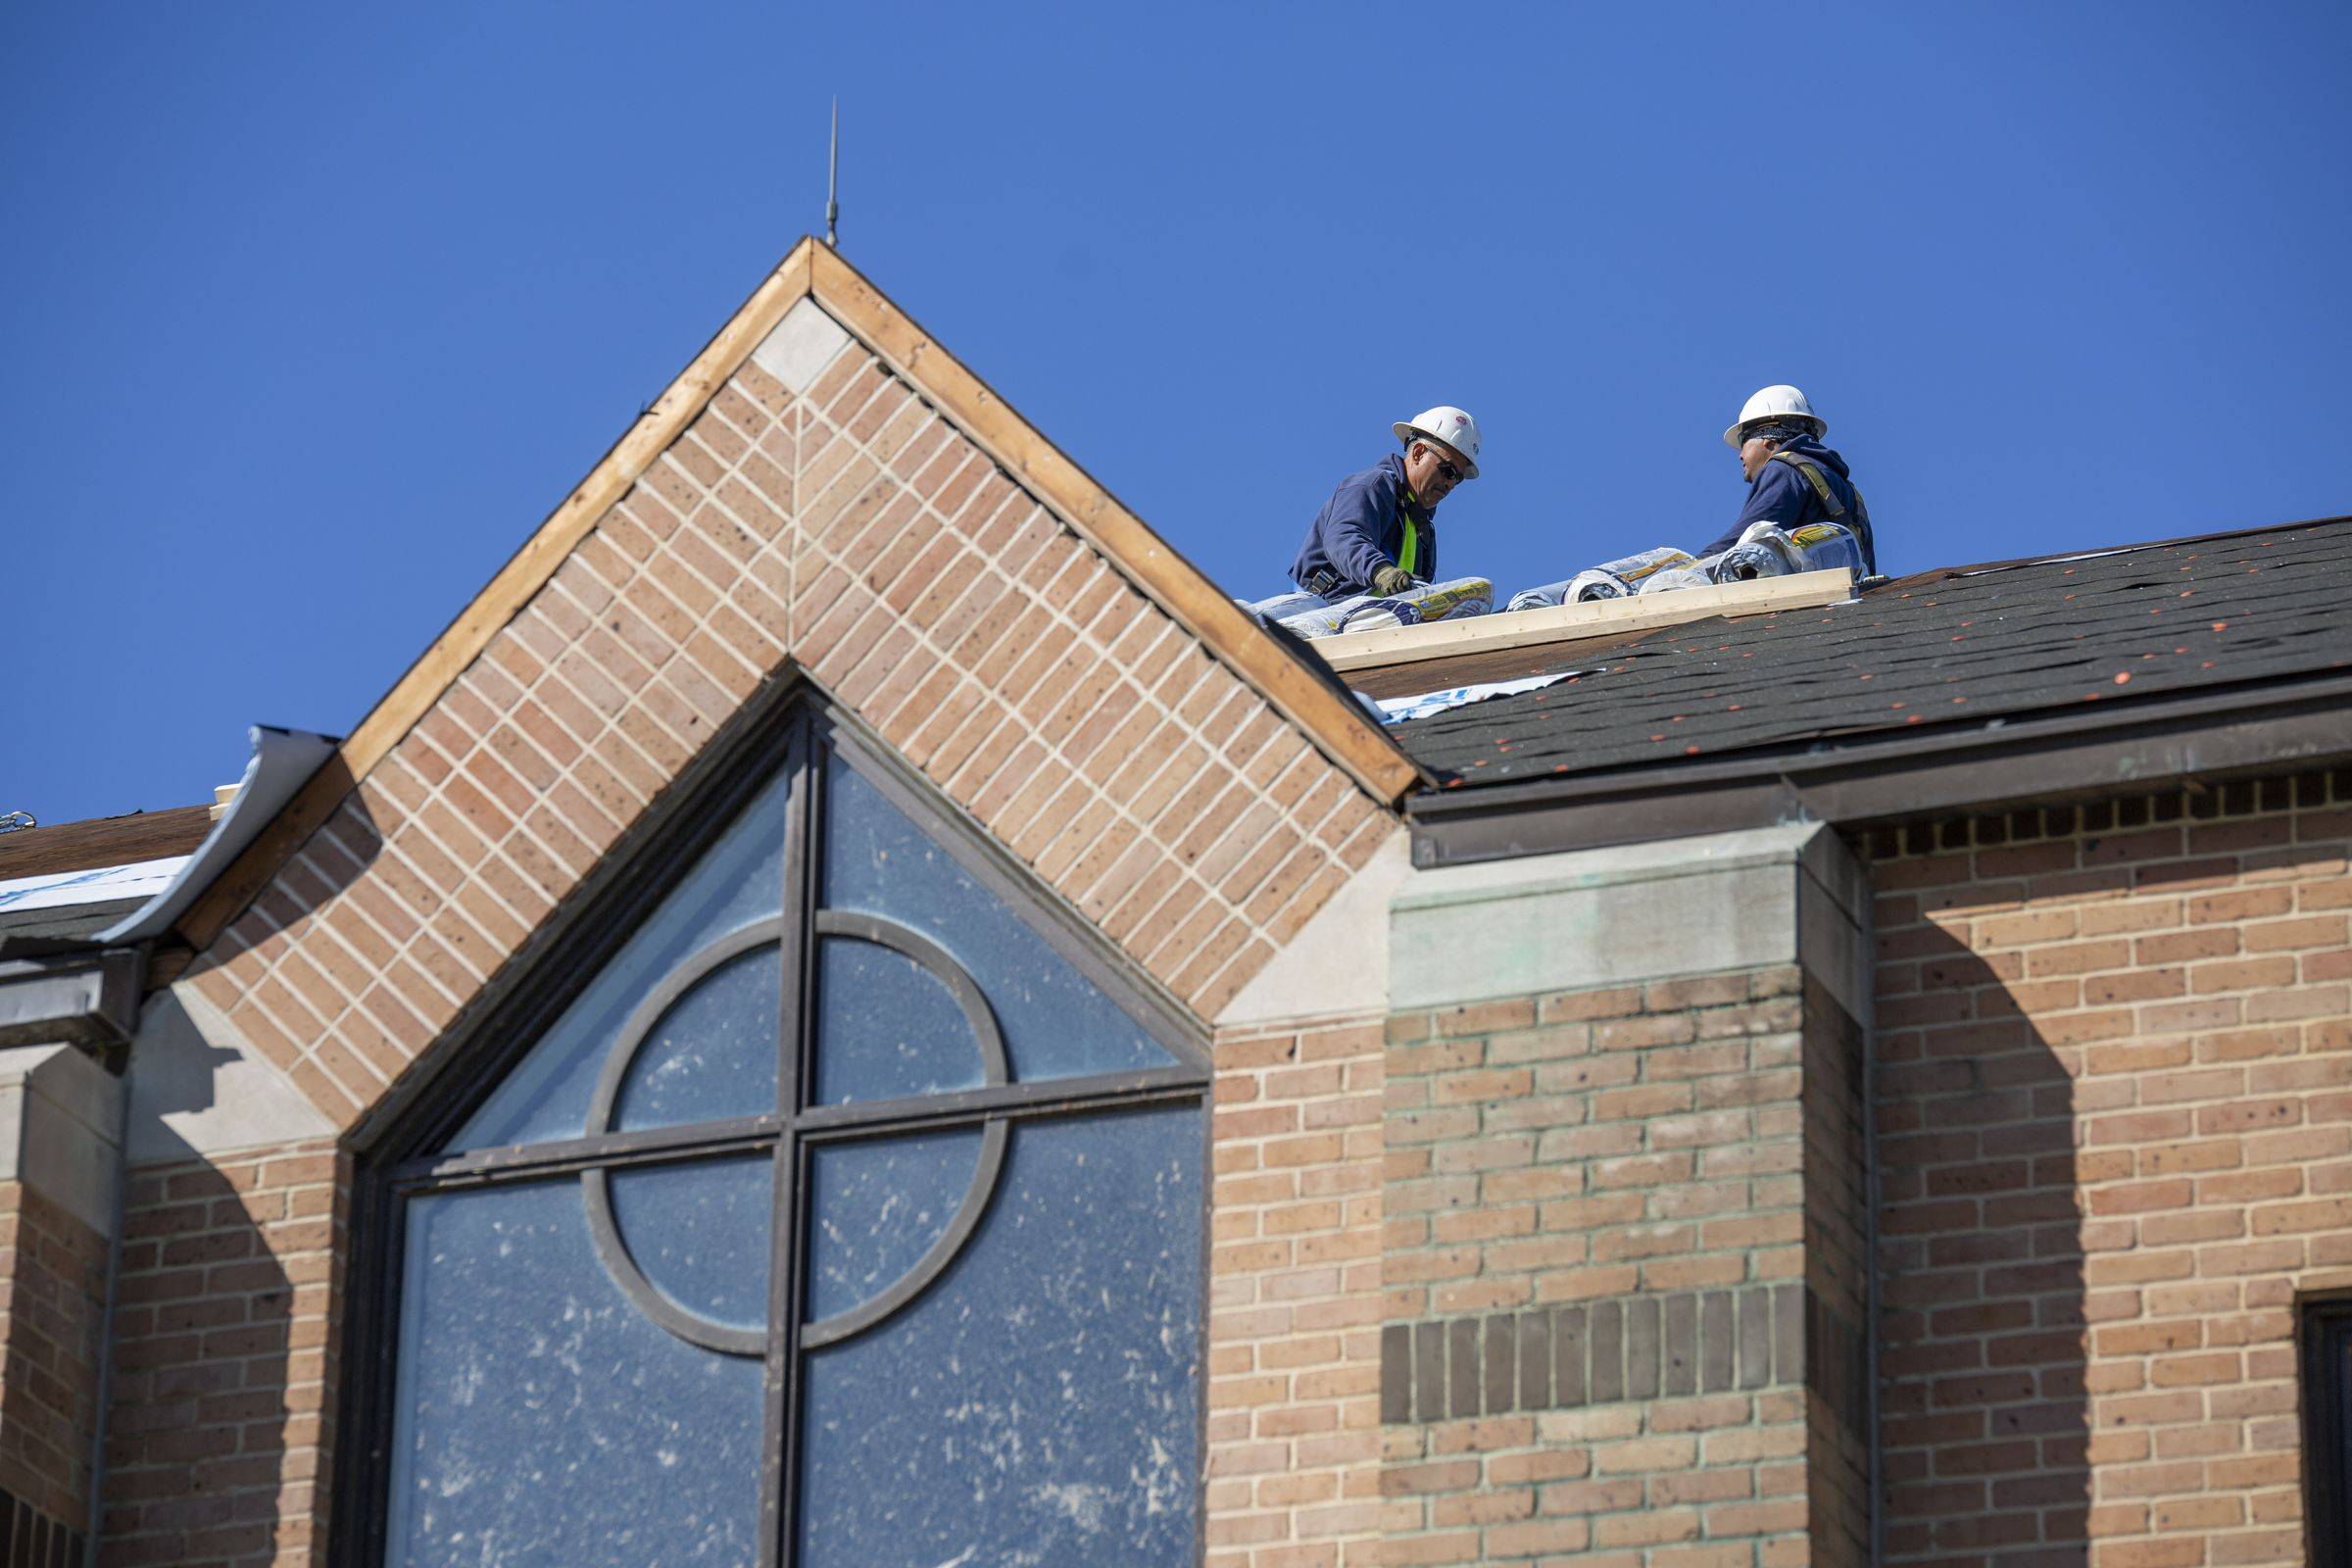 Workers repair the Chapel roof.